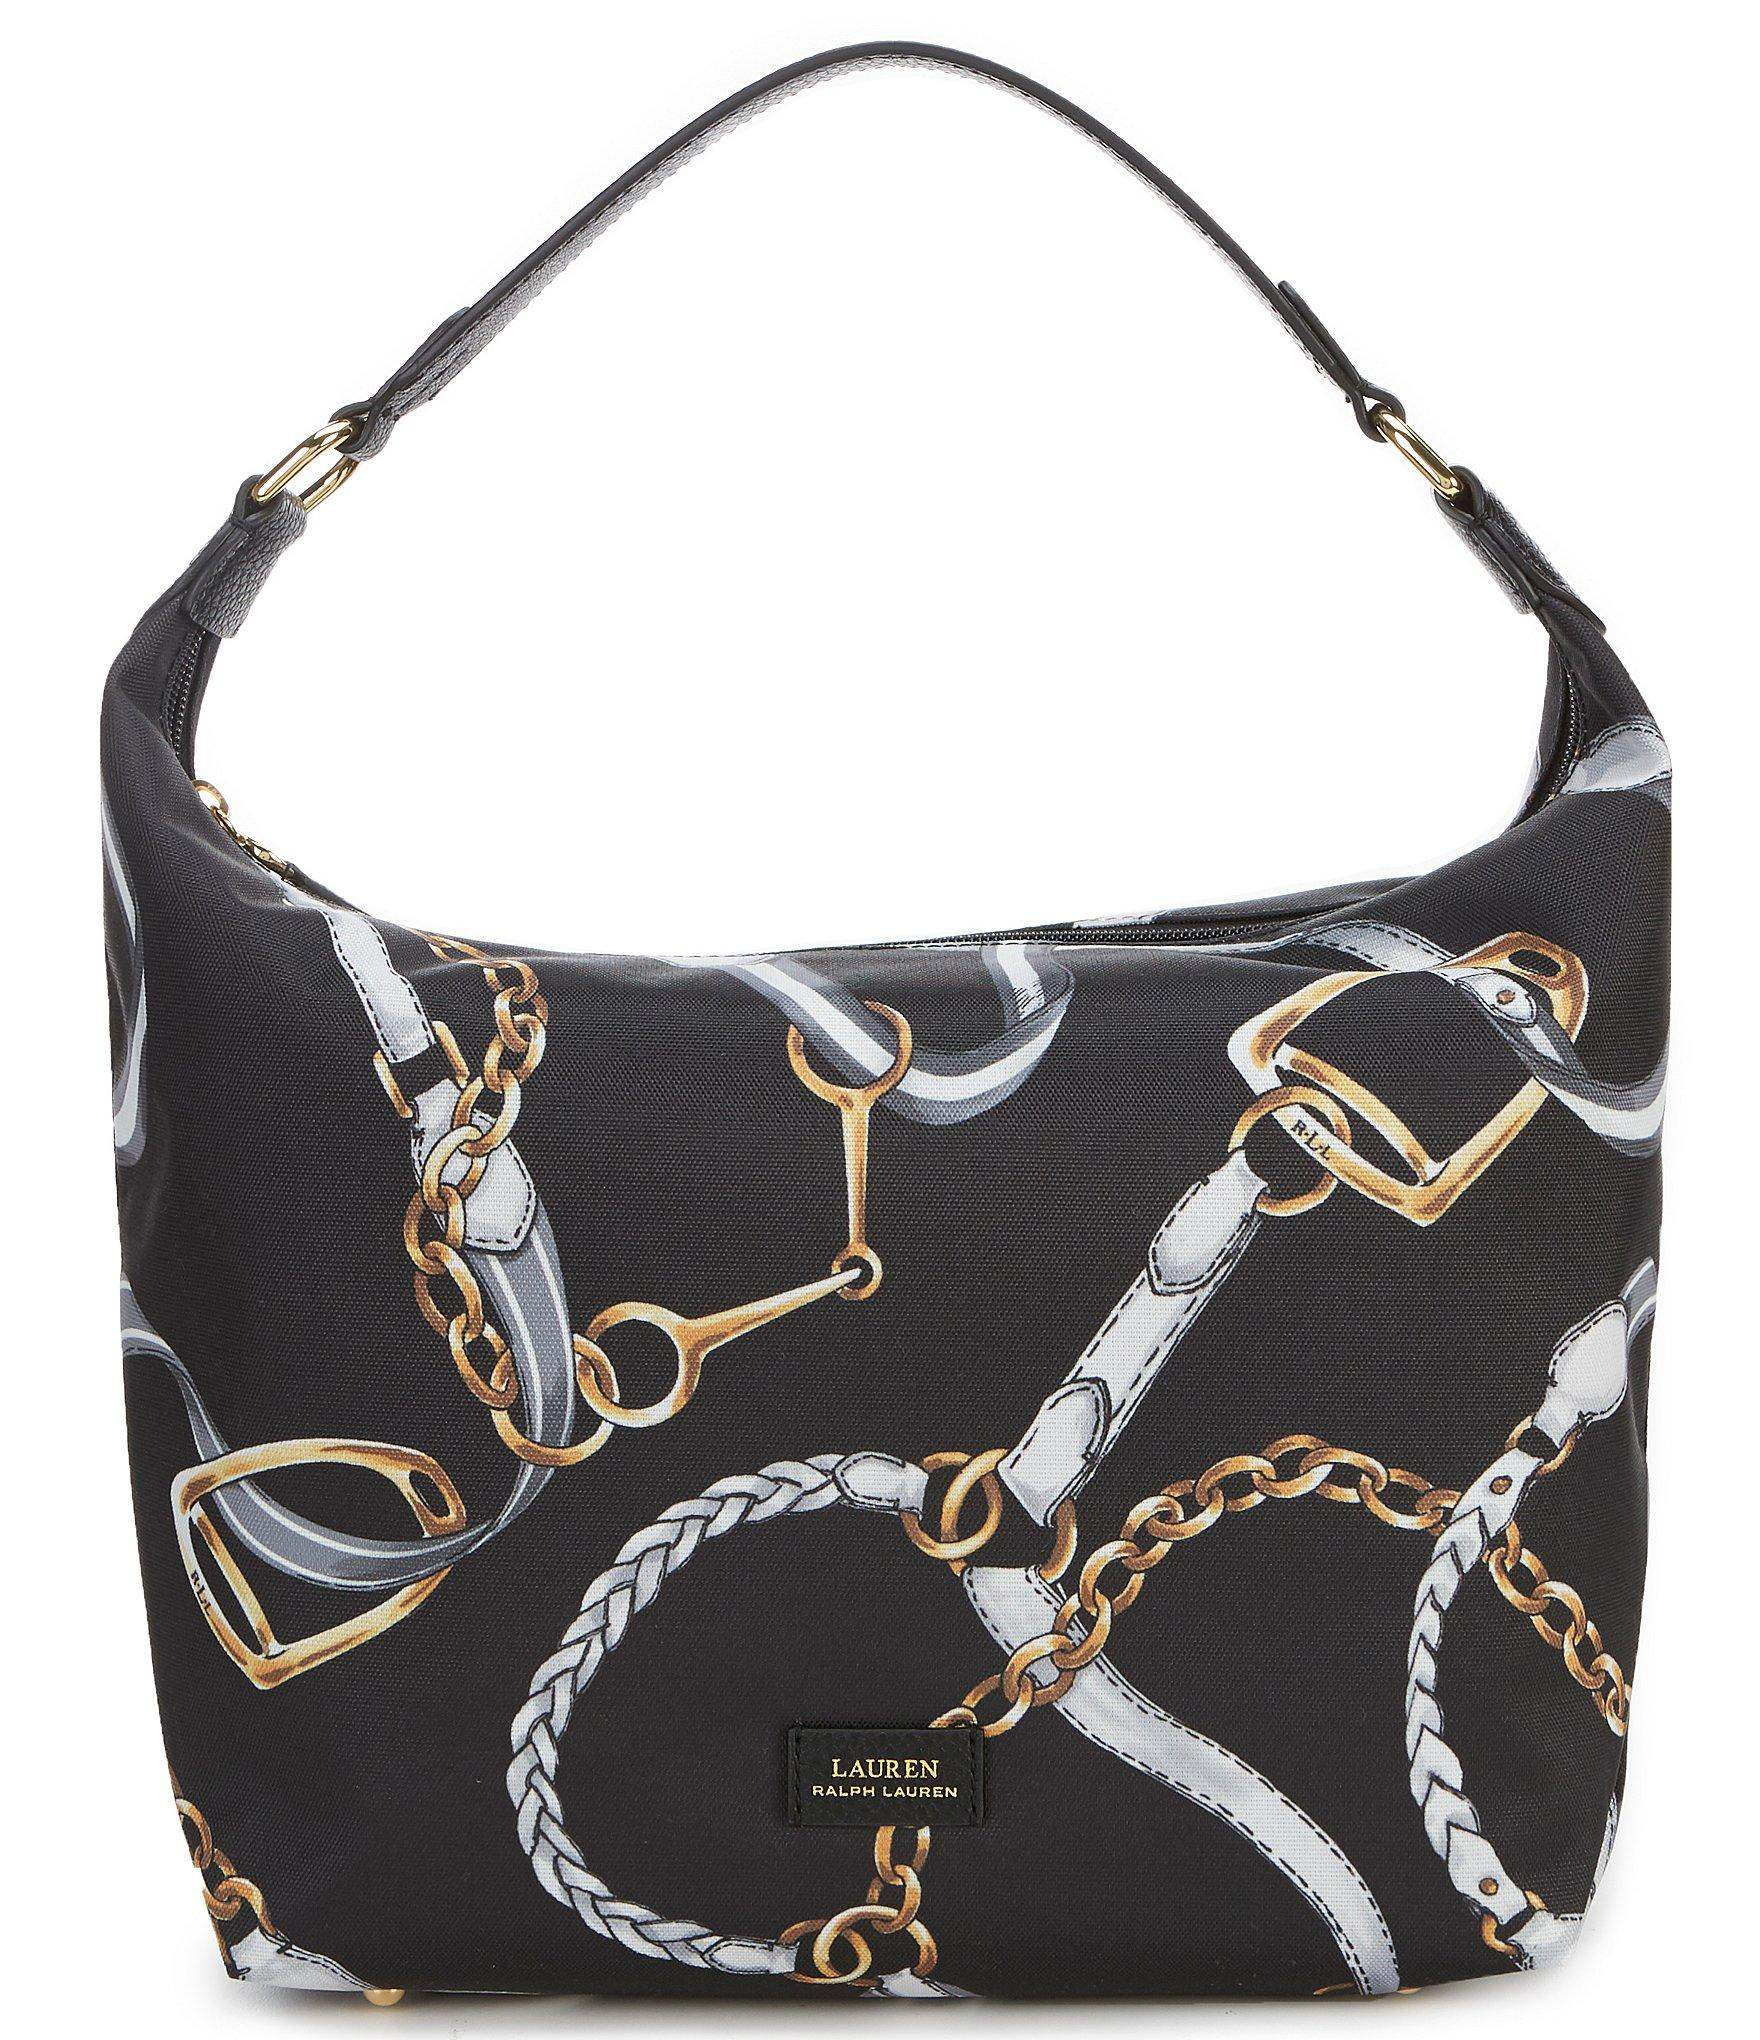 dcd1244a8f Lauren by Ralph Lauren. Women s Black Chadwick Nylon Equestrian Hobo Bag